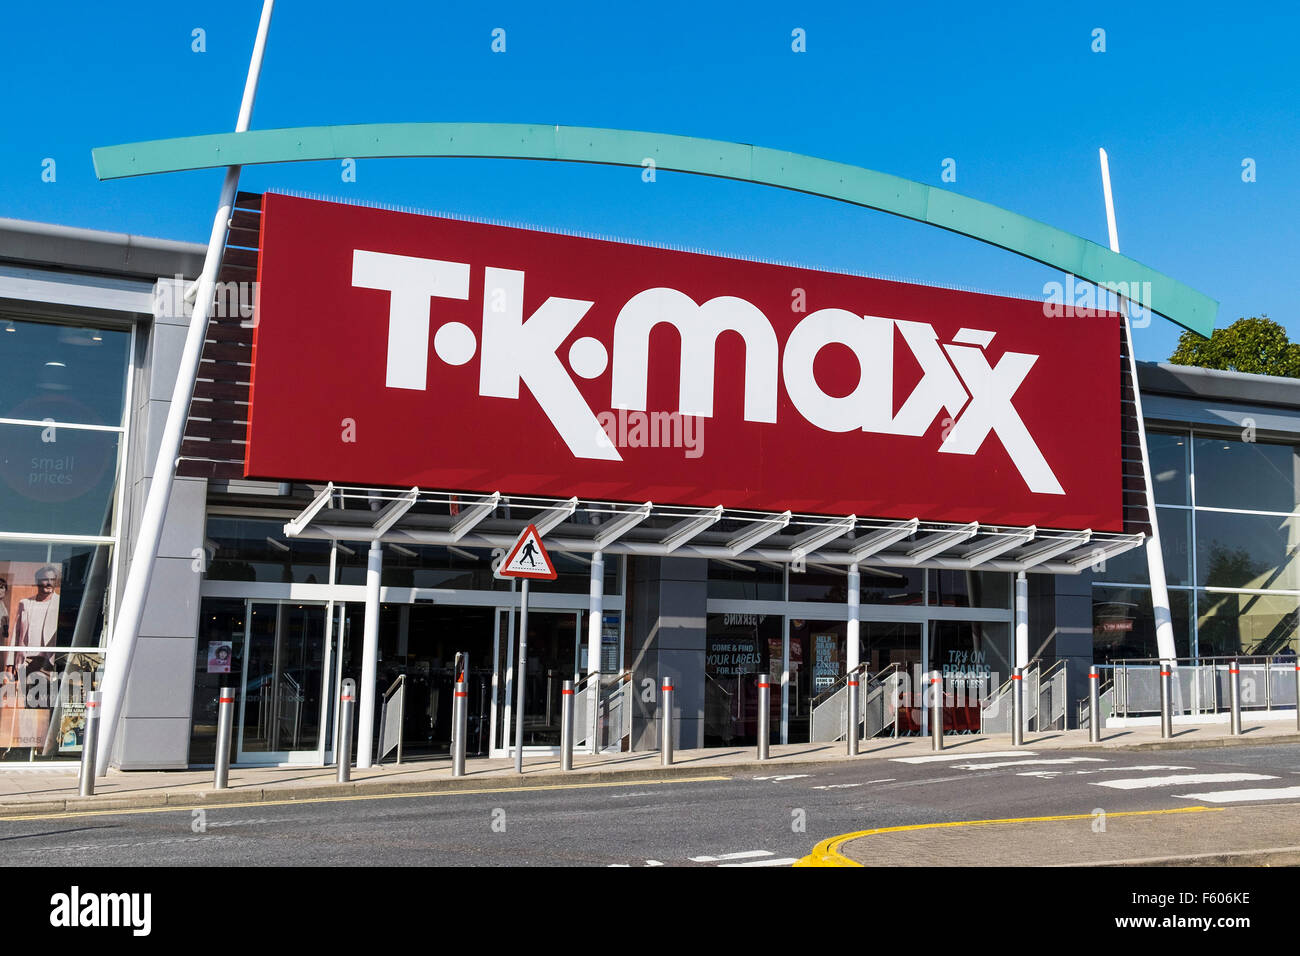 A TK MAXX store on the Pipps Hill Retail Park in Basildon, Essex. - Stock Image